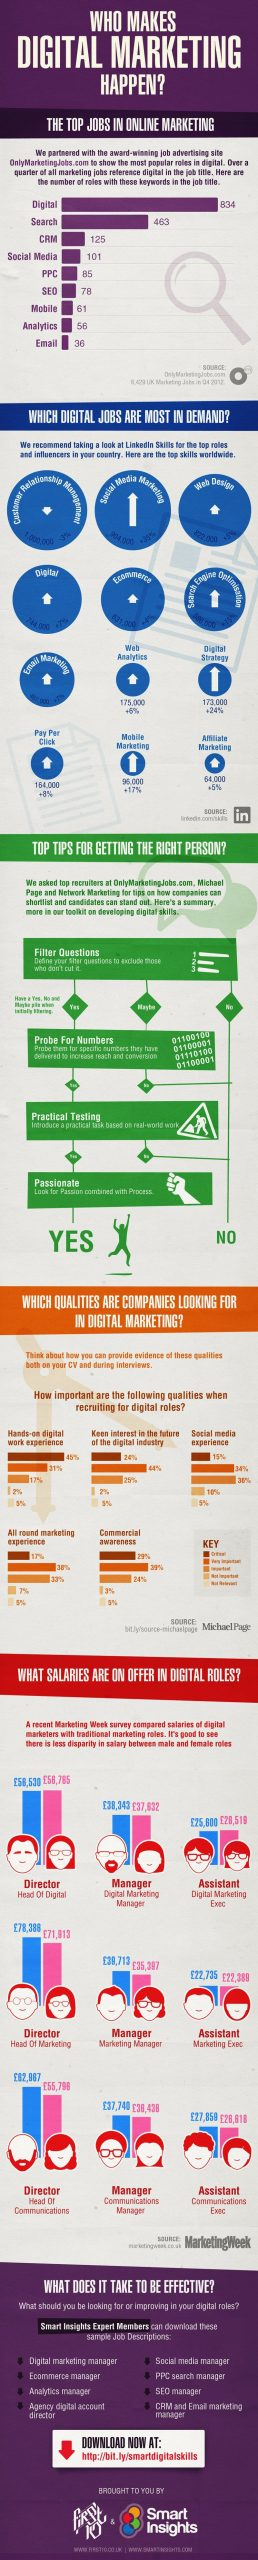 digital marketing jobs career infographic